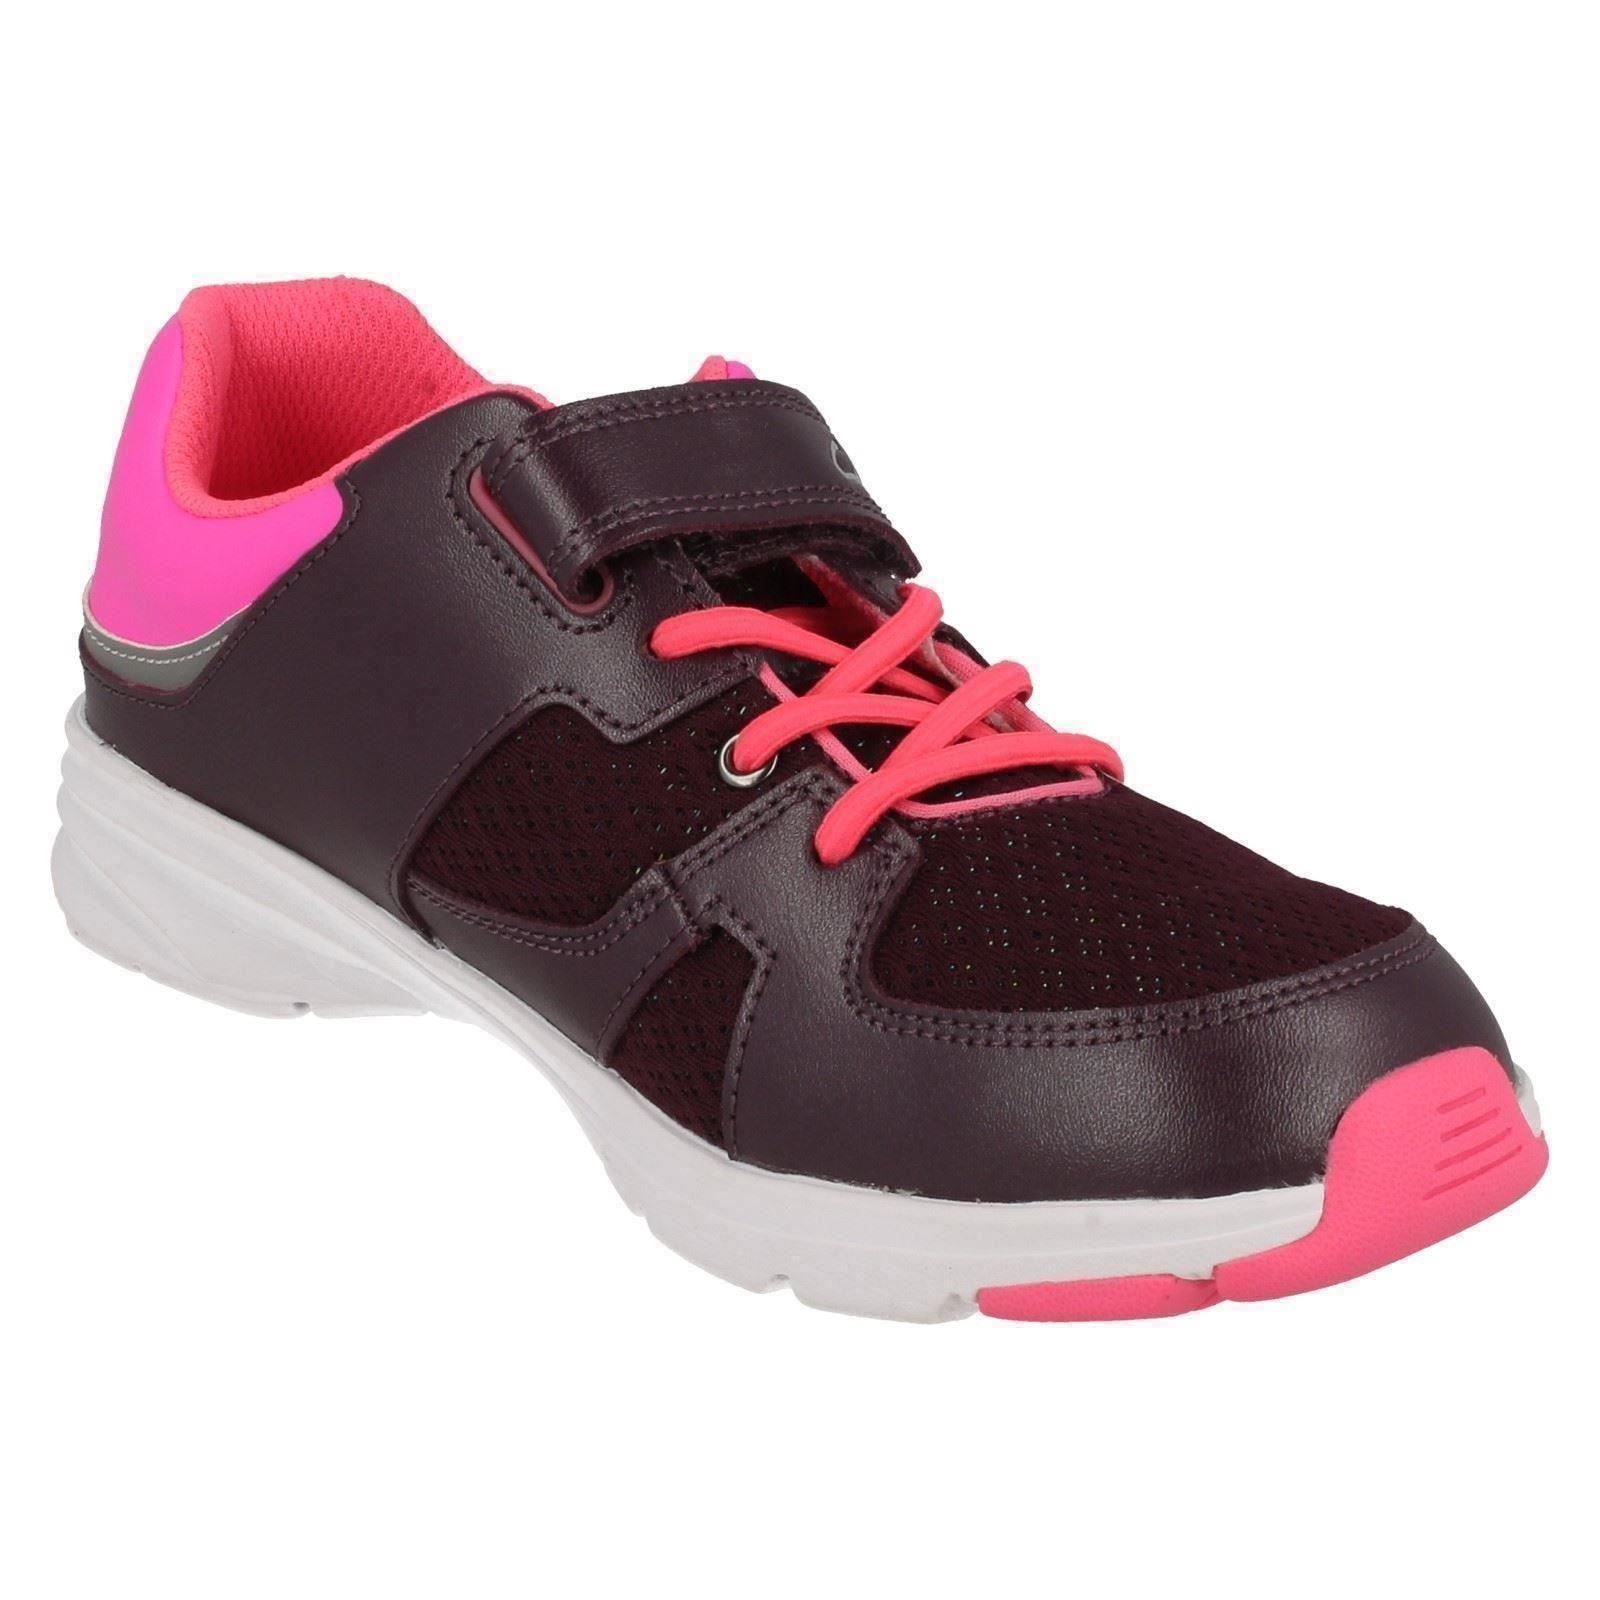 Girls Clarks Gloforms Rounded Toe Casual Hook /& Loop Leather Trainers ReflectGlo